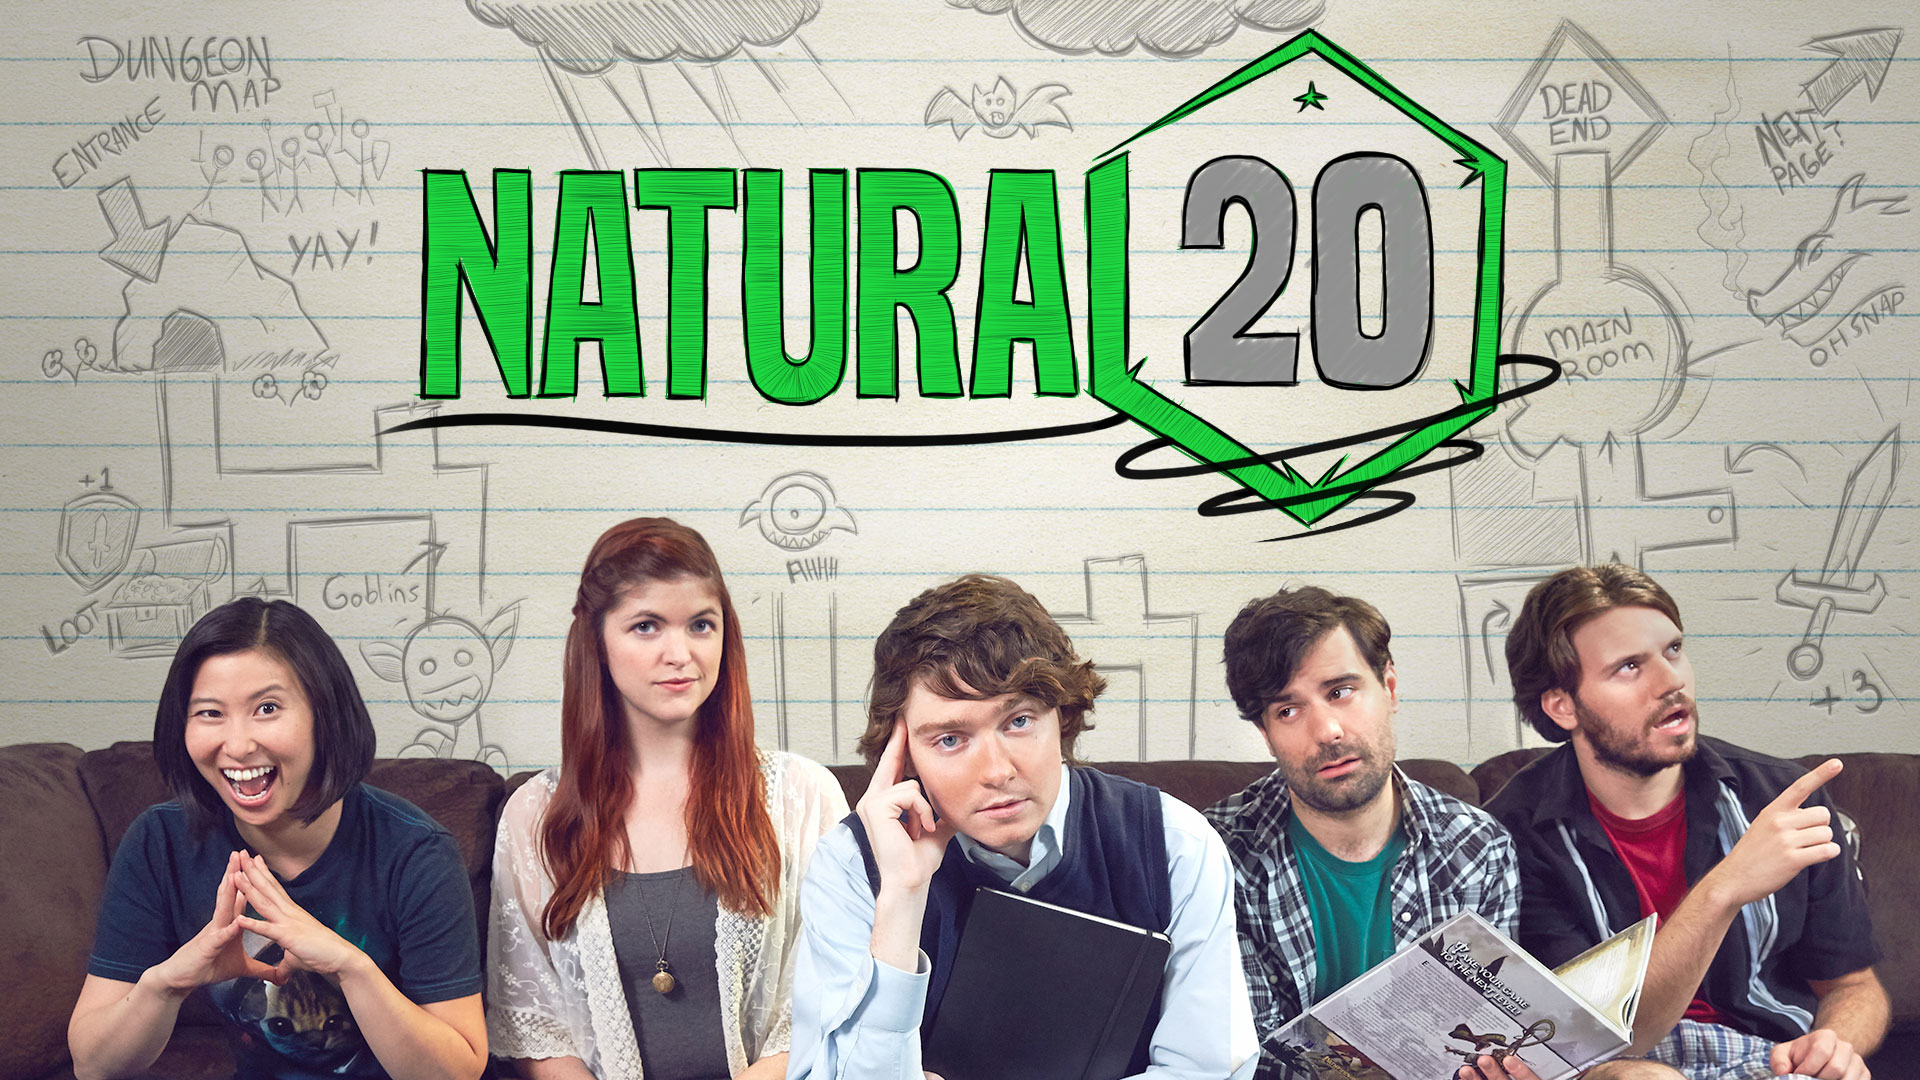 Natural 20 Title Screen